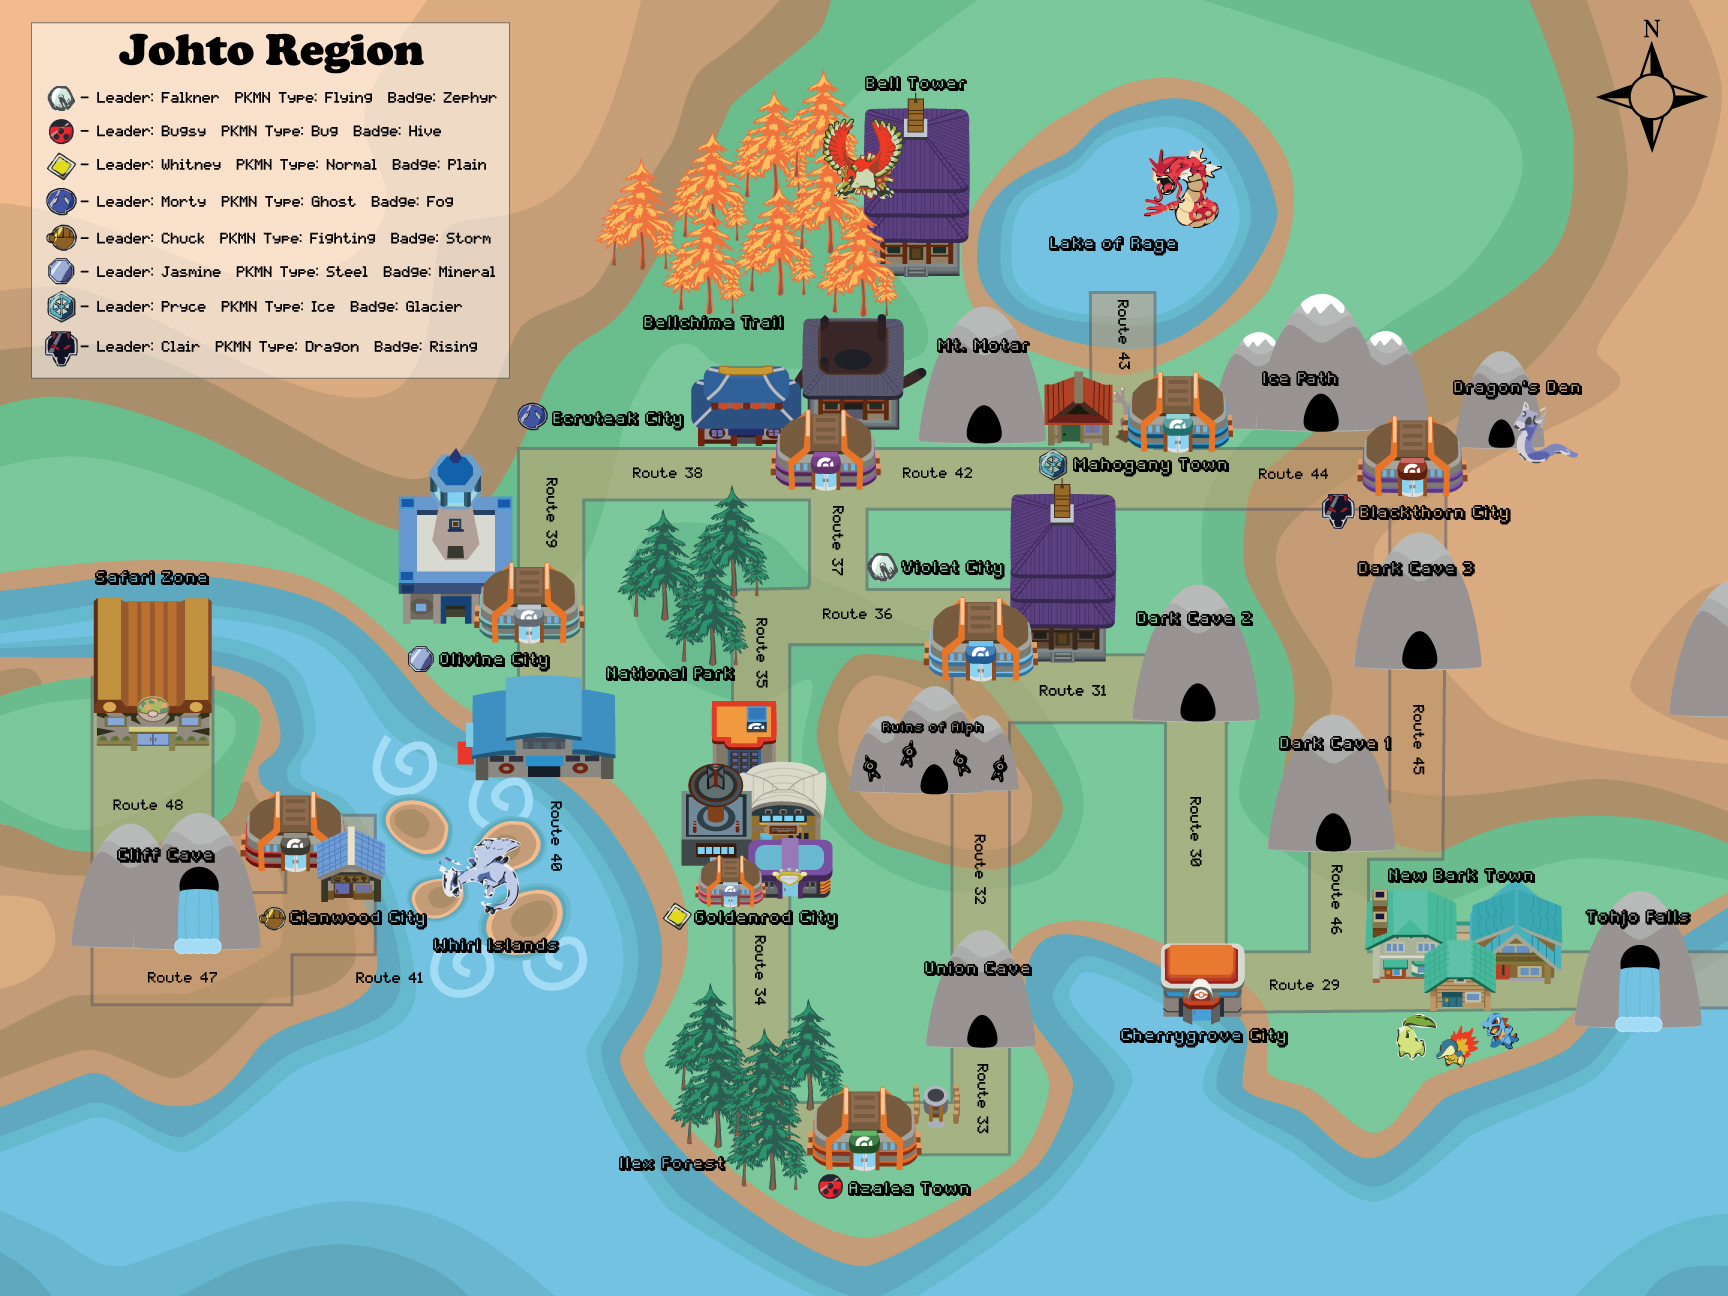 map of johto by reecie on deviantart